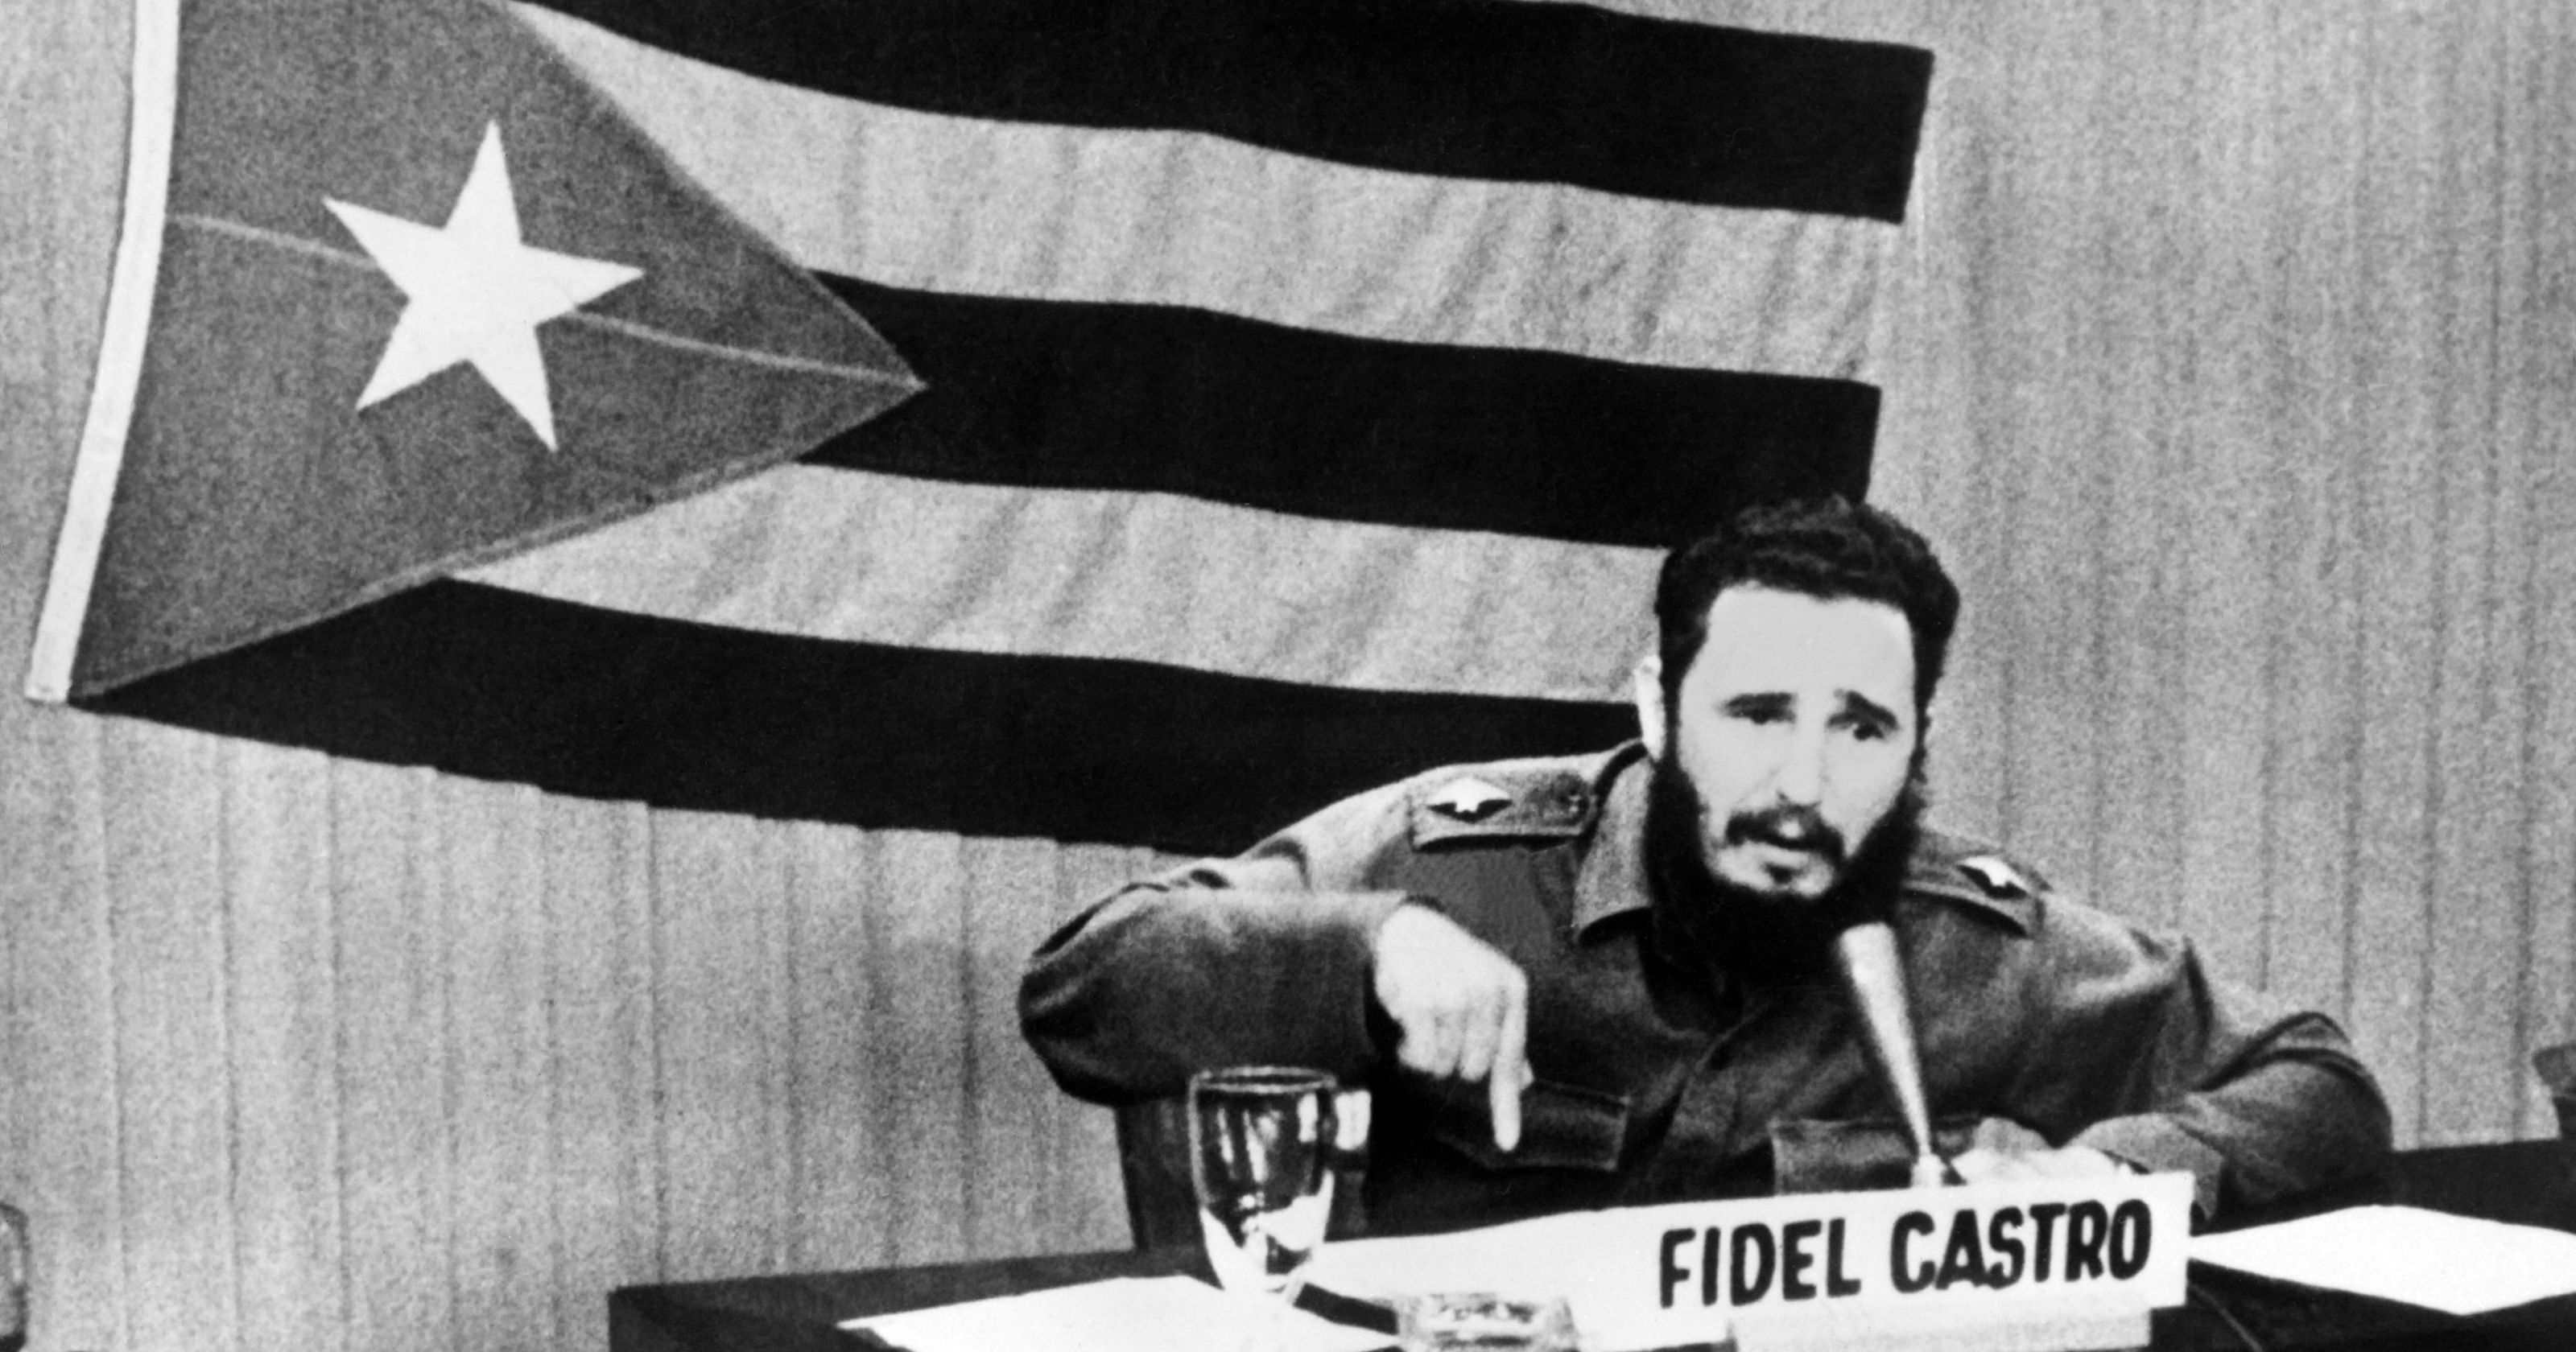 fidel castro essay how jewish writers learned to loathe fidel  the death of fidel castro and the future of the n people mmxlii 635544262181500263 fidel castro